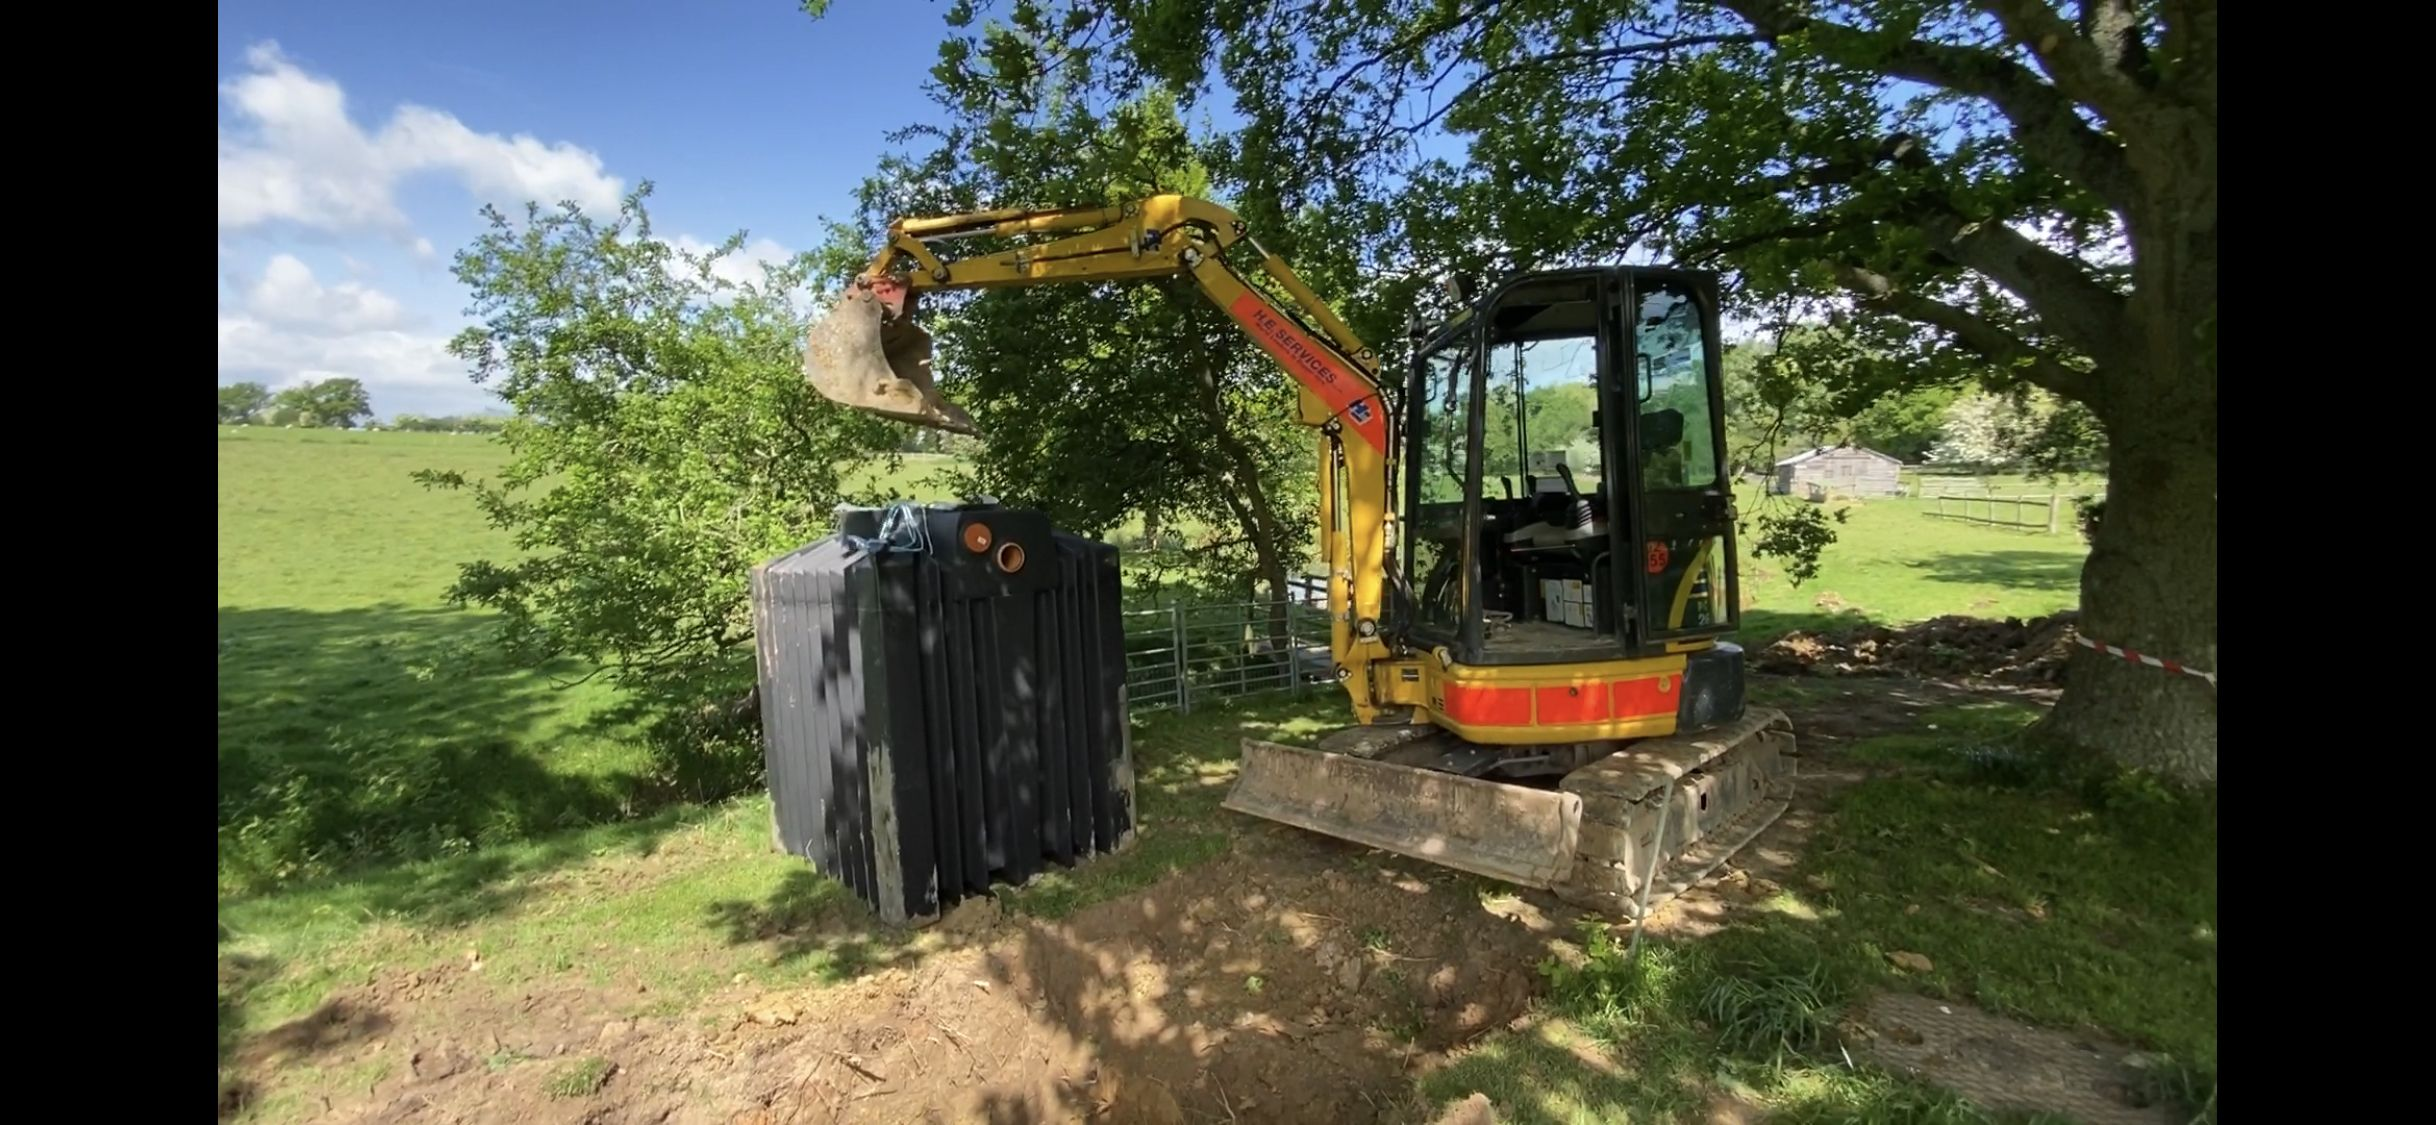 I am about to install the amazing Ecosystem septic tank